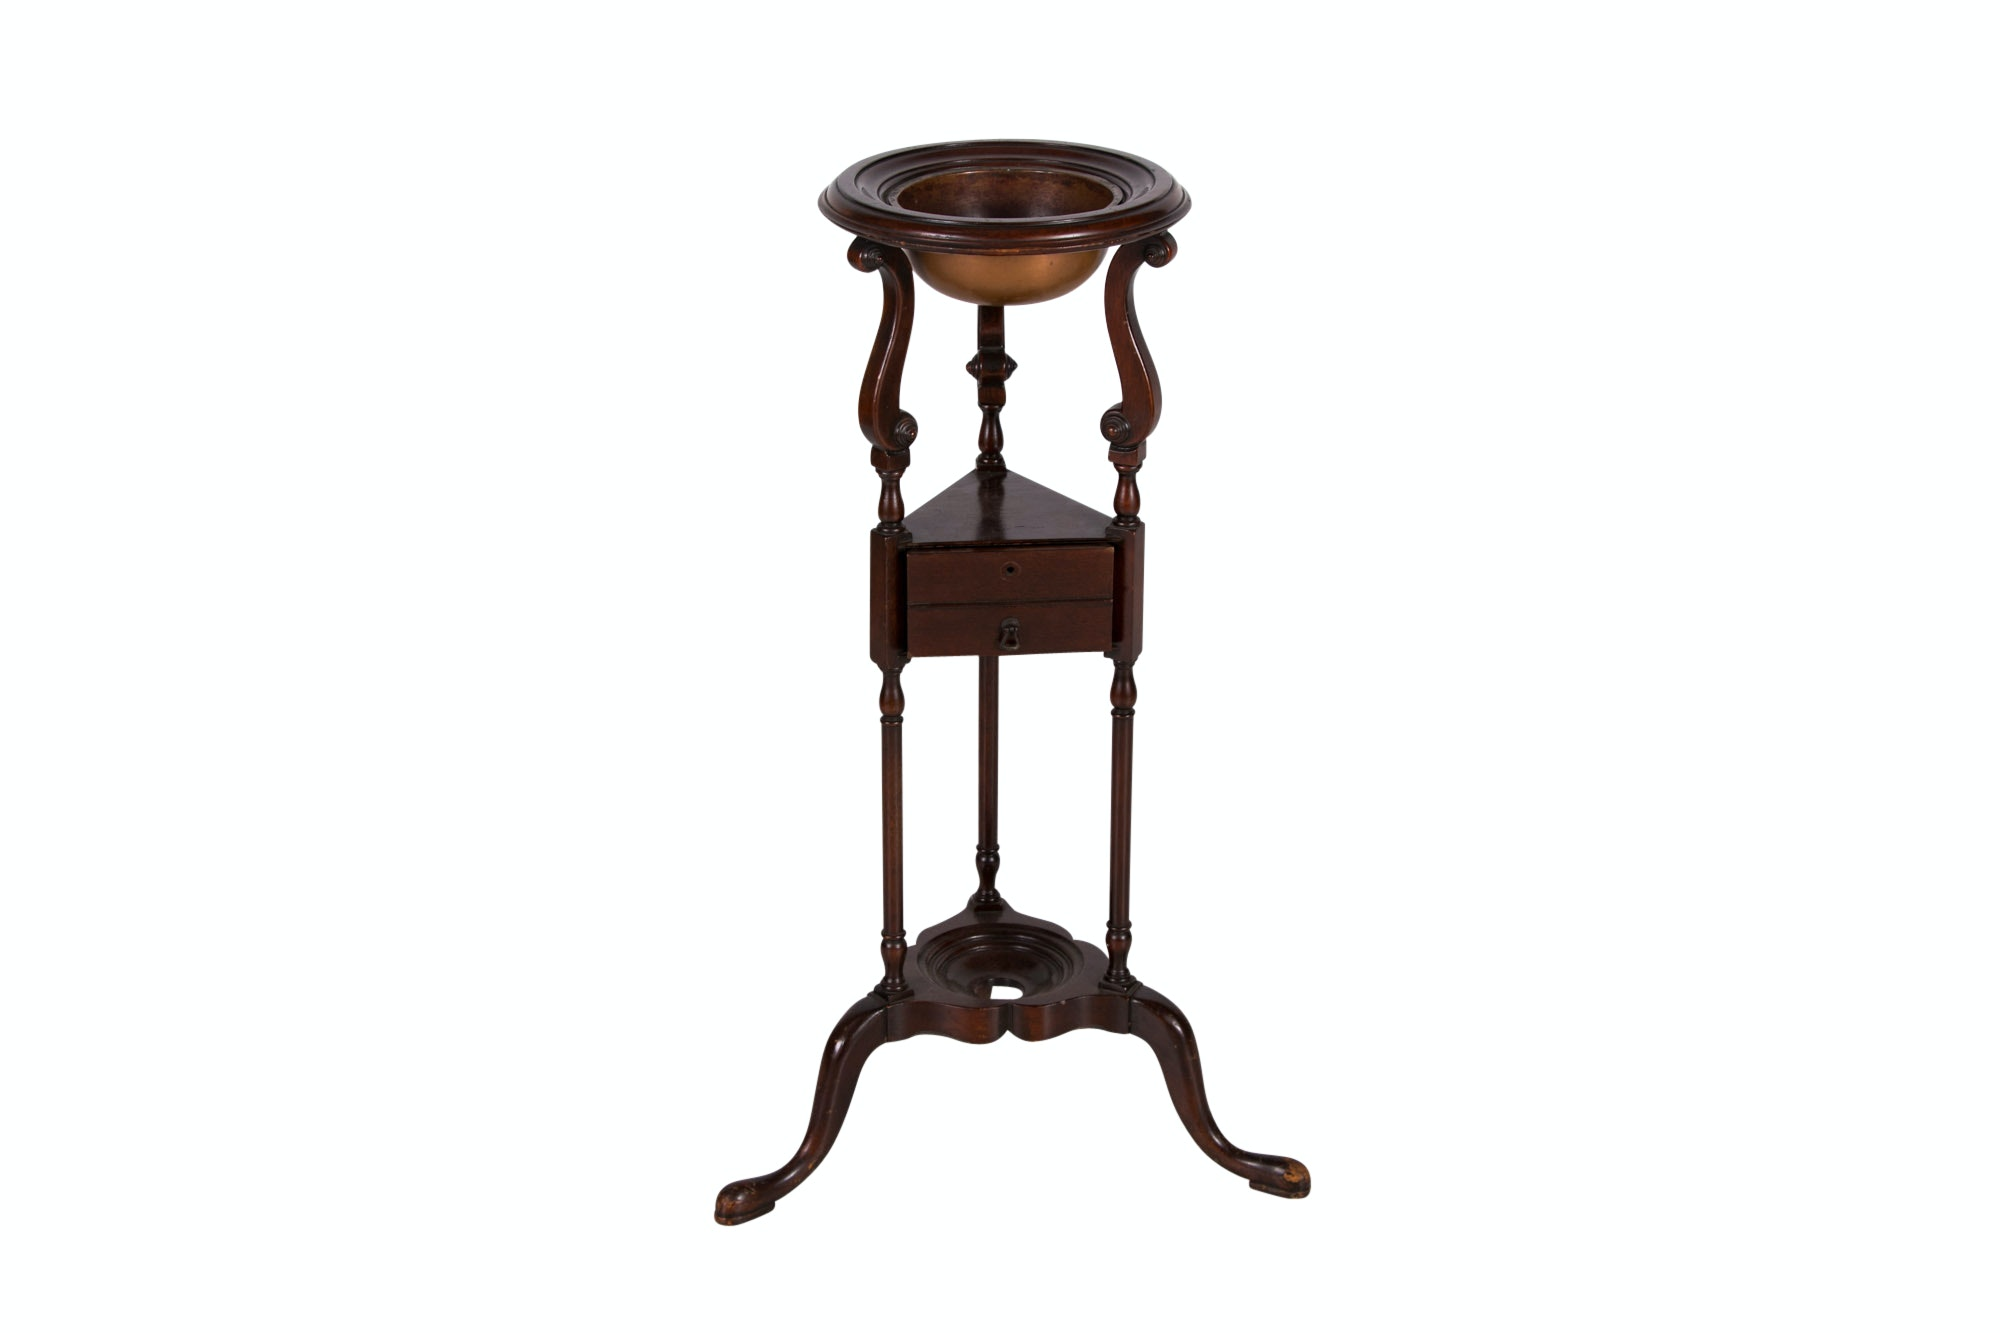 George III Style Mahogany and Copper-Fitted Washstand by Fine Arts Furniture Co.